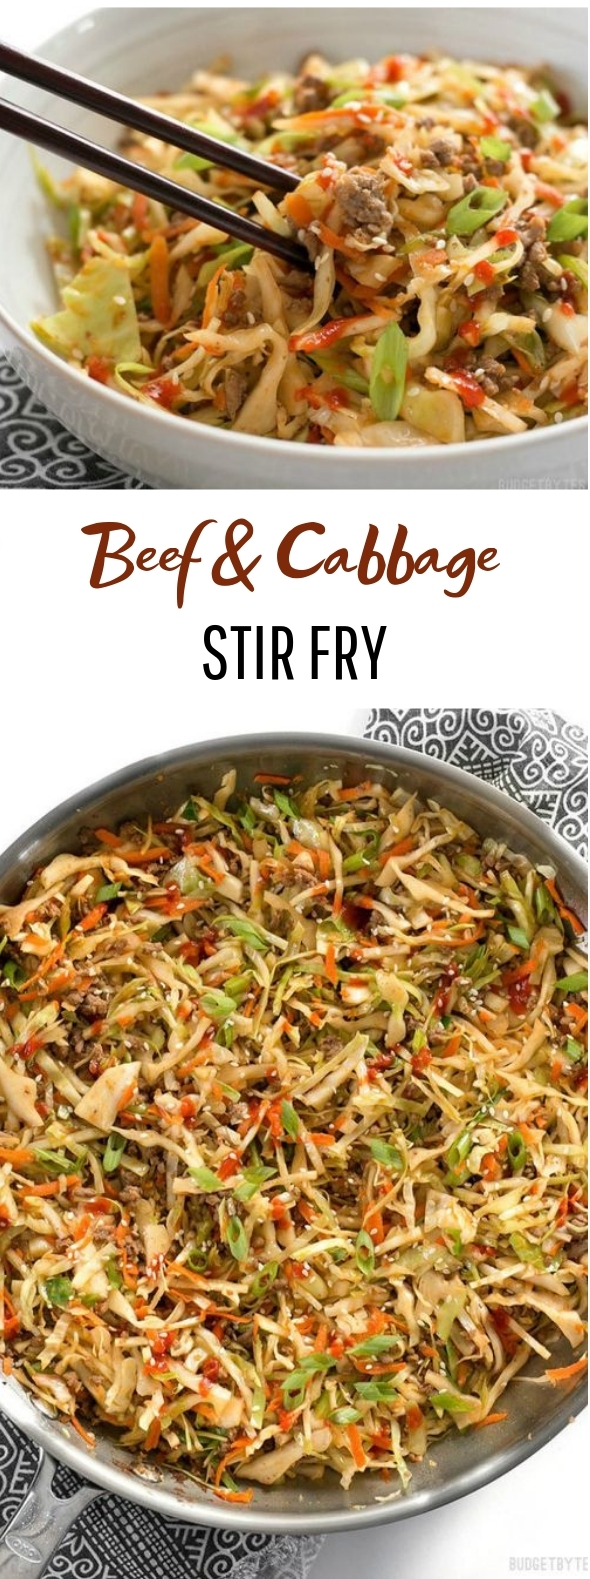 Beef and Cabbage Stir Fry #healthy #lowcarb